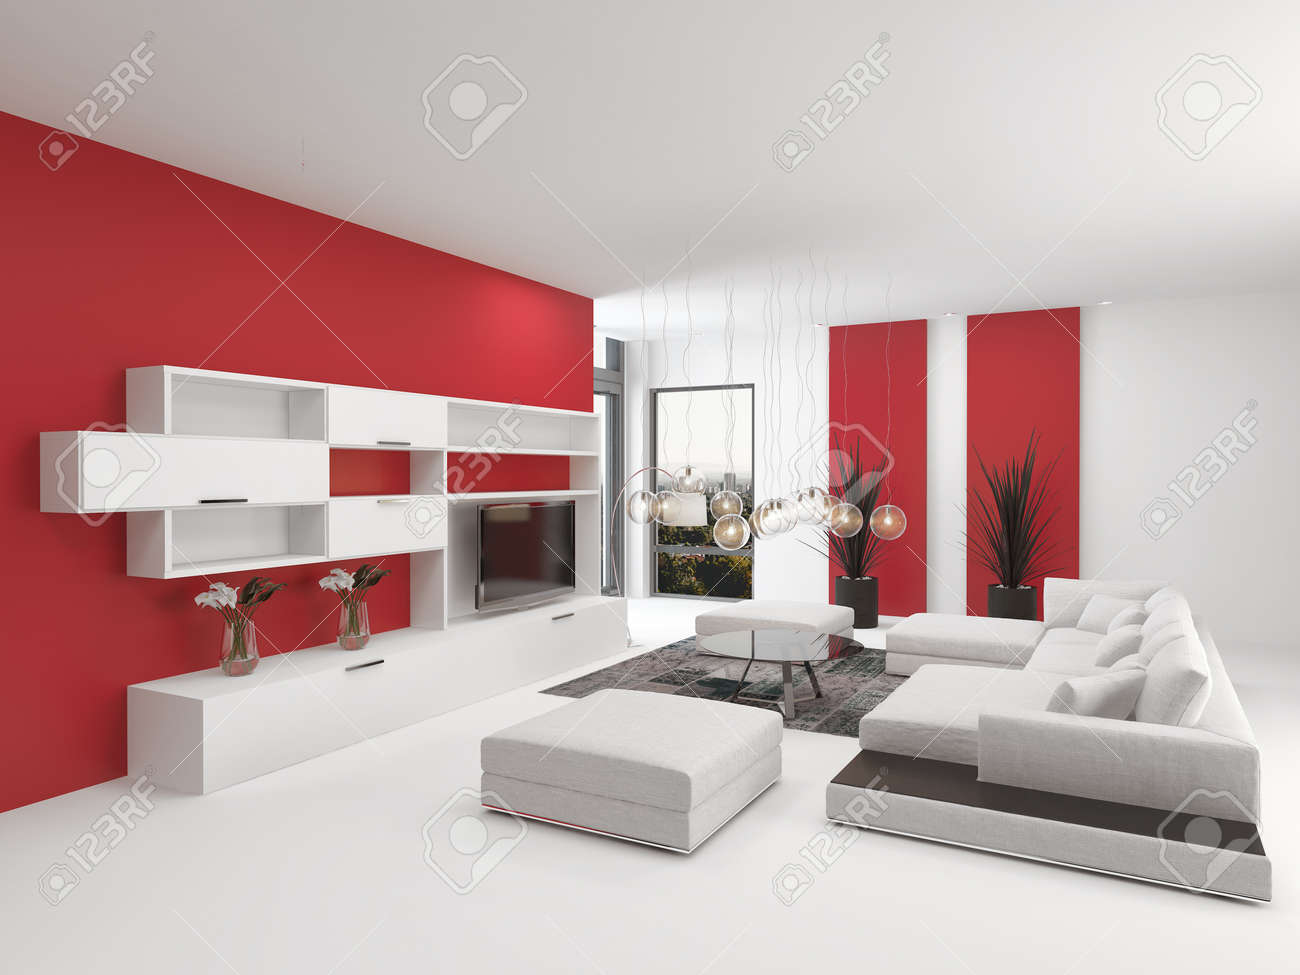 upmarket modern living room interior with vivid red accents and, Living room